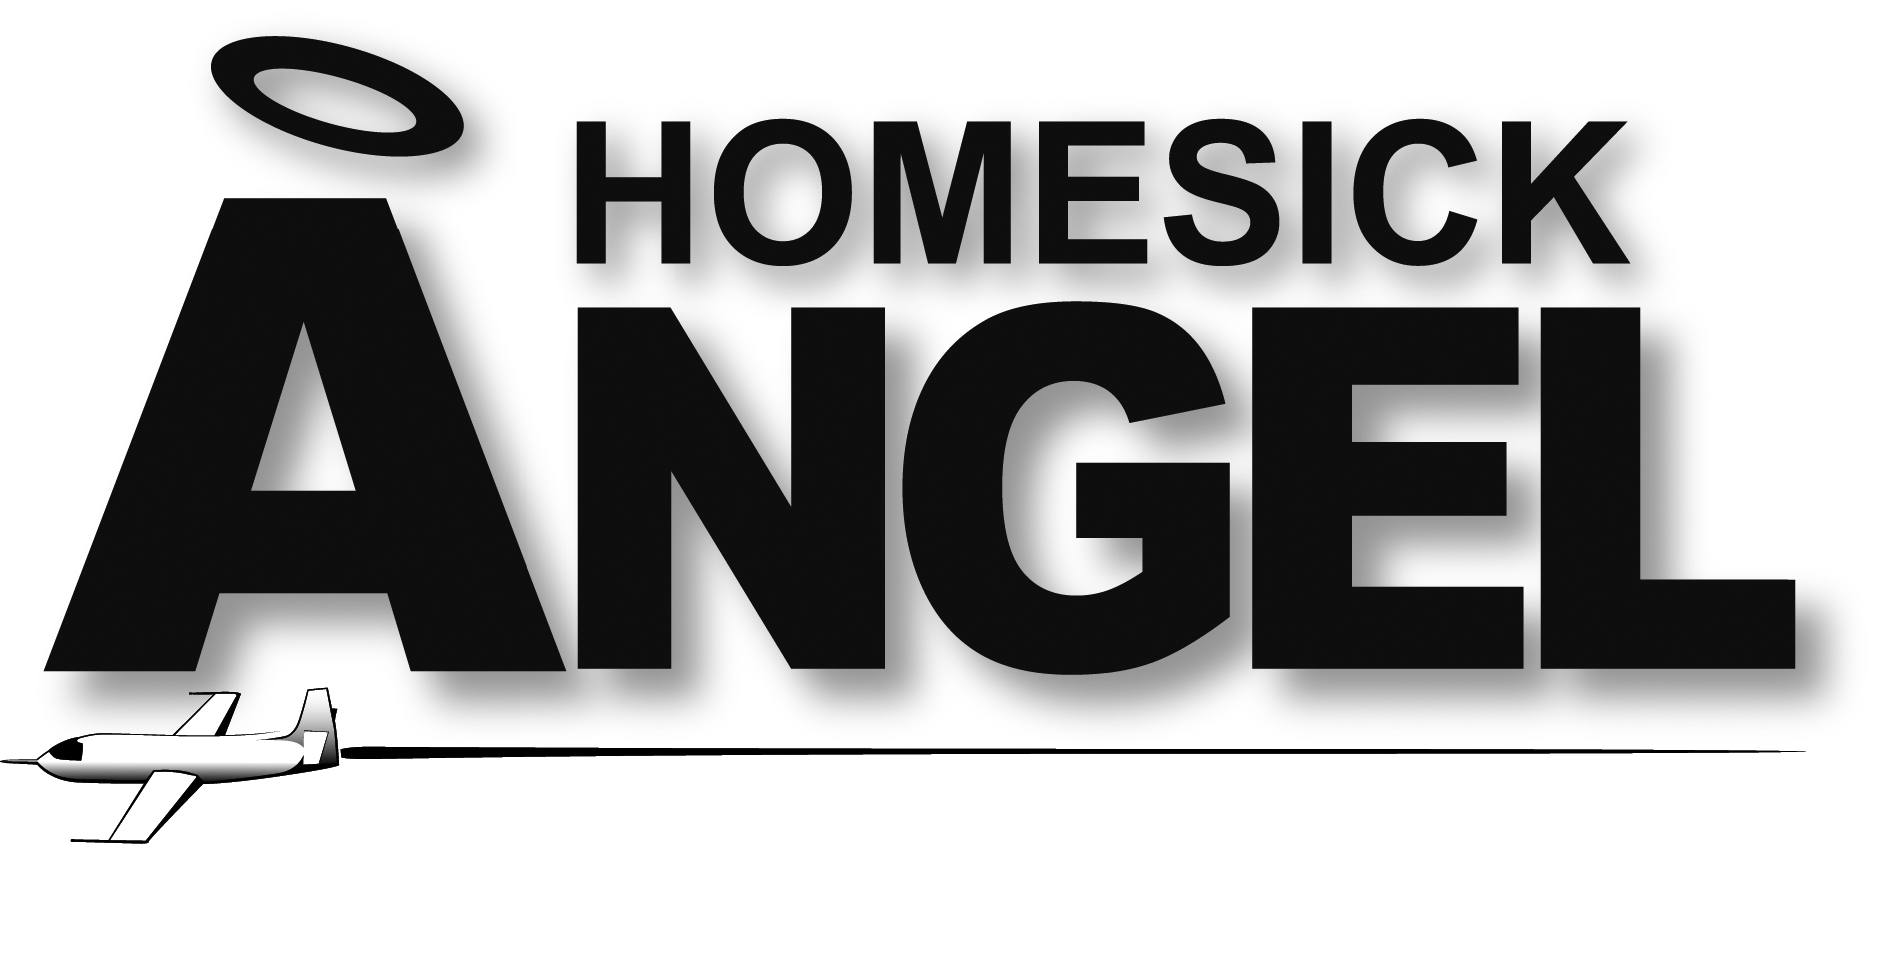 Homesick Angel logo final.jpg